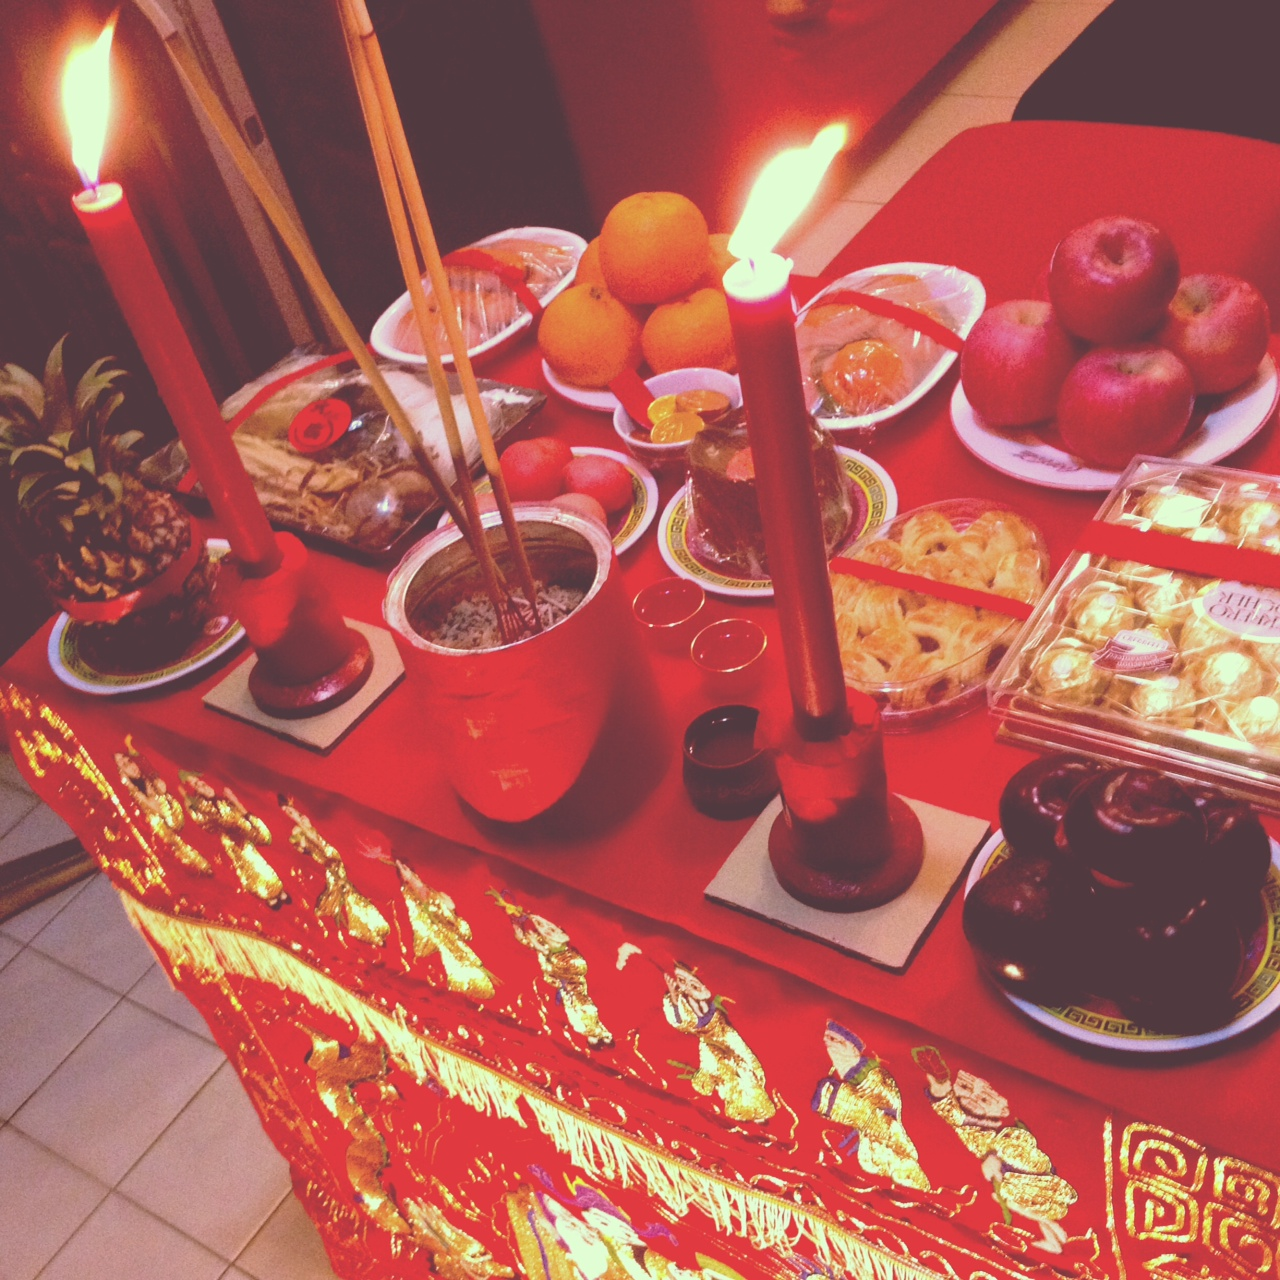 BAI TI GONG . JADE EMPERORS BIRTHDAY. HOKKIEN 9TH DAY CNY 2013